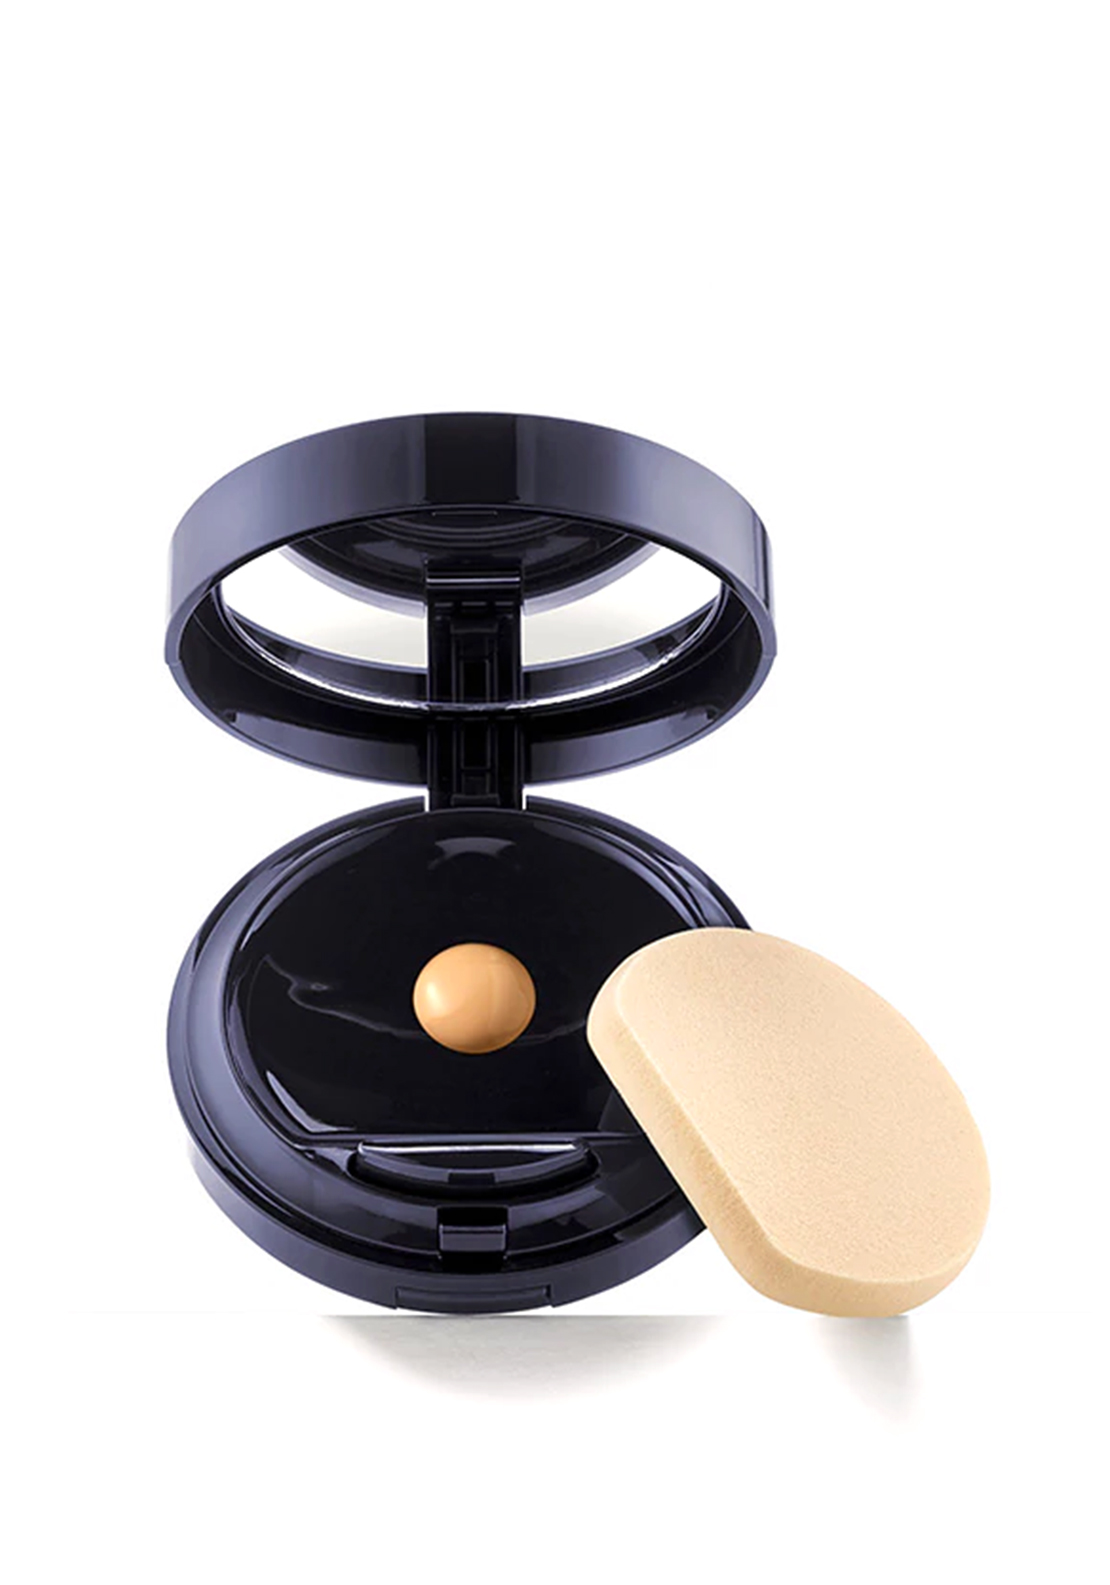 Estee Lauder Double Wear Make Up to Go Liquid Compact, Pure Beige